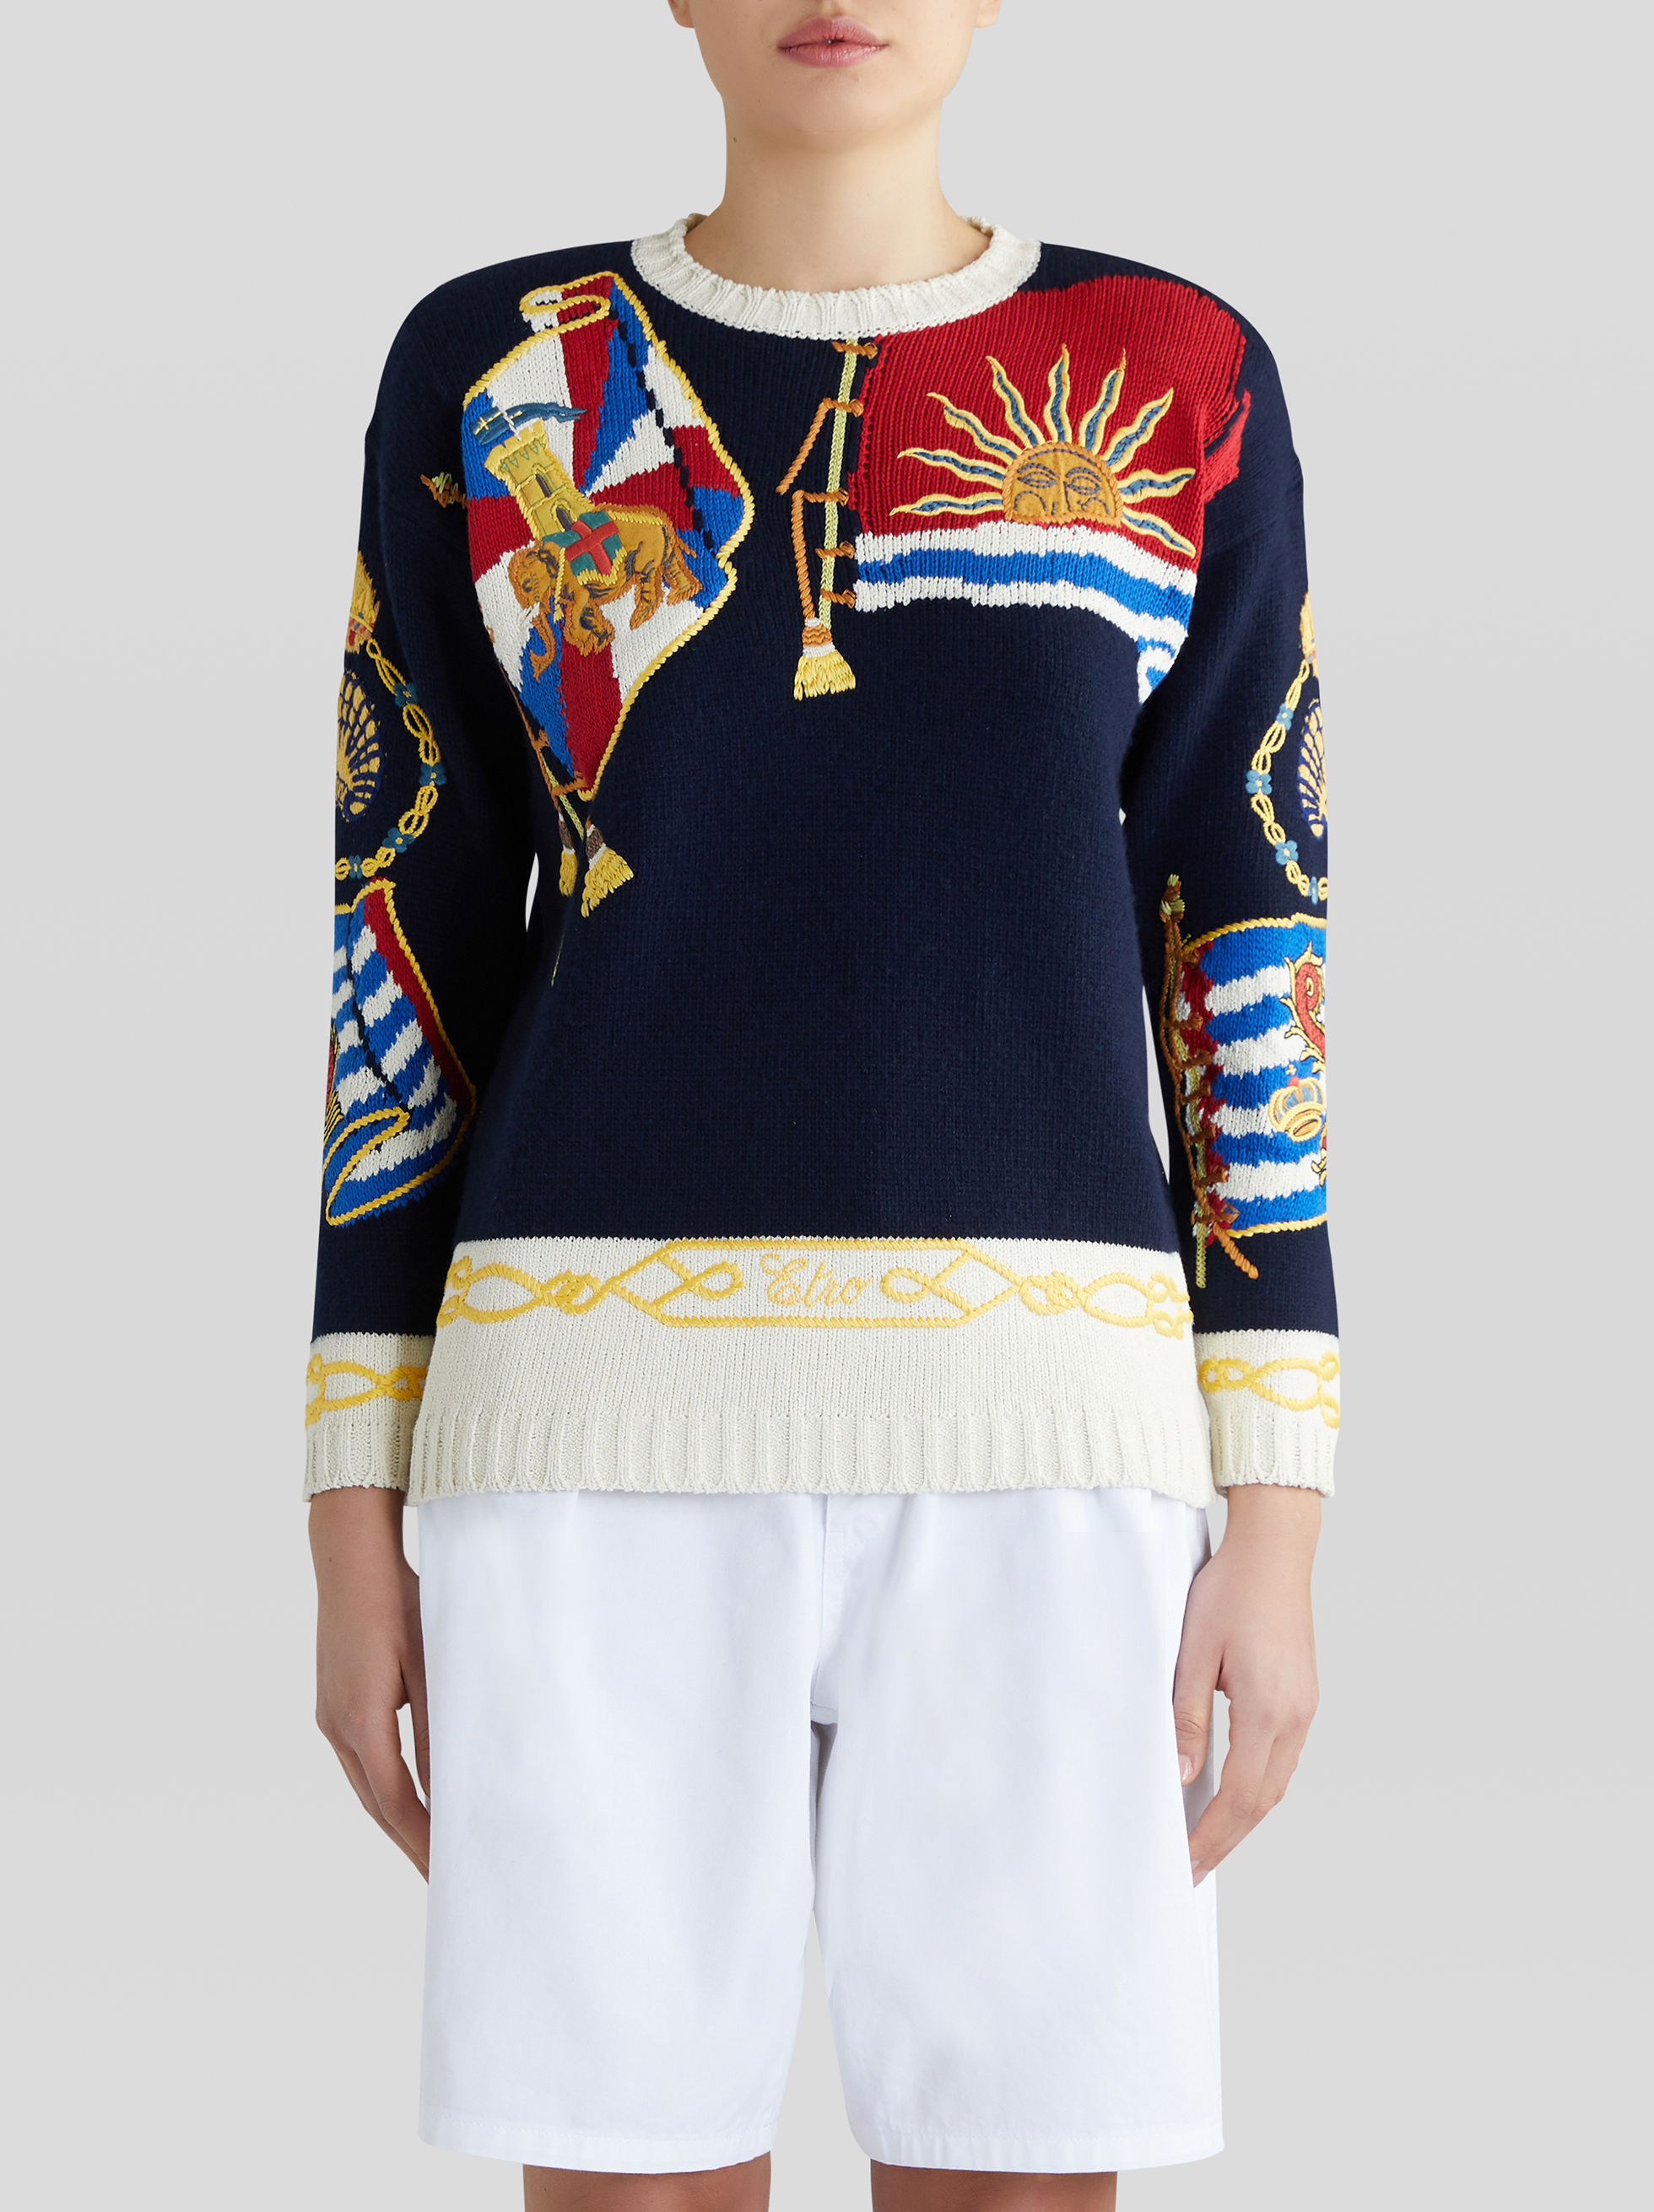 WOOL AND COTTON JUMPER WITH EMBROIDERED PEGASO